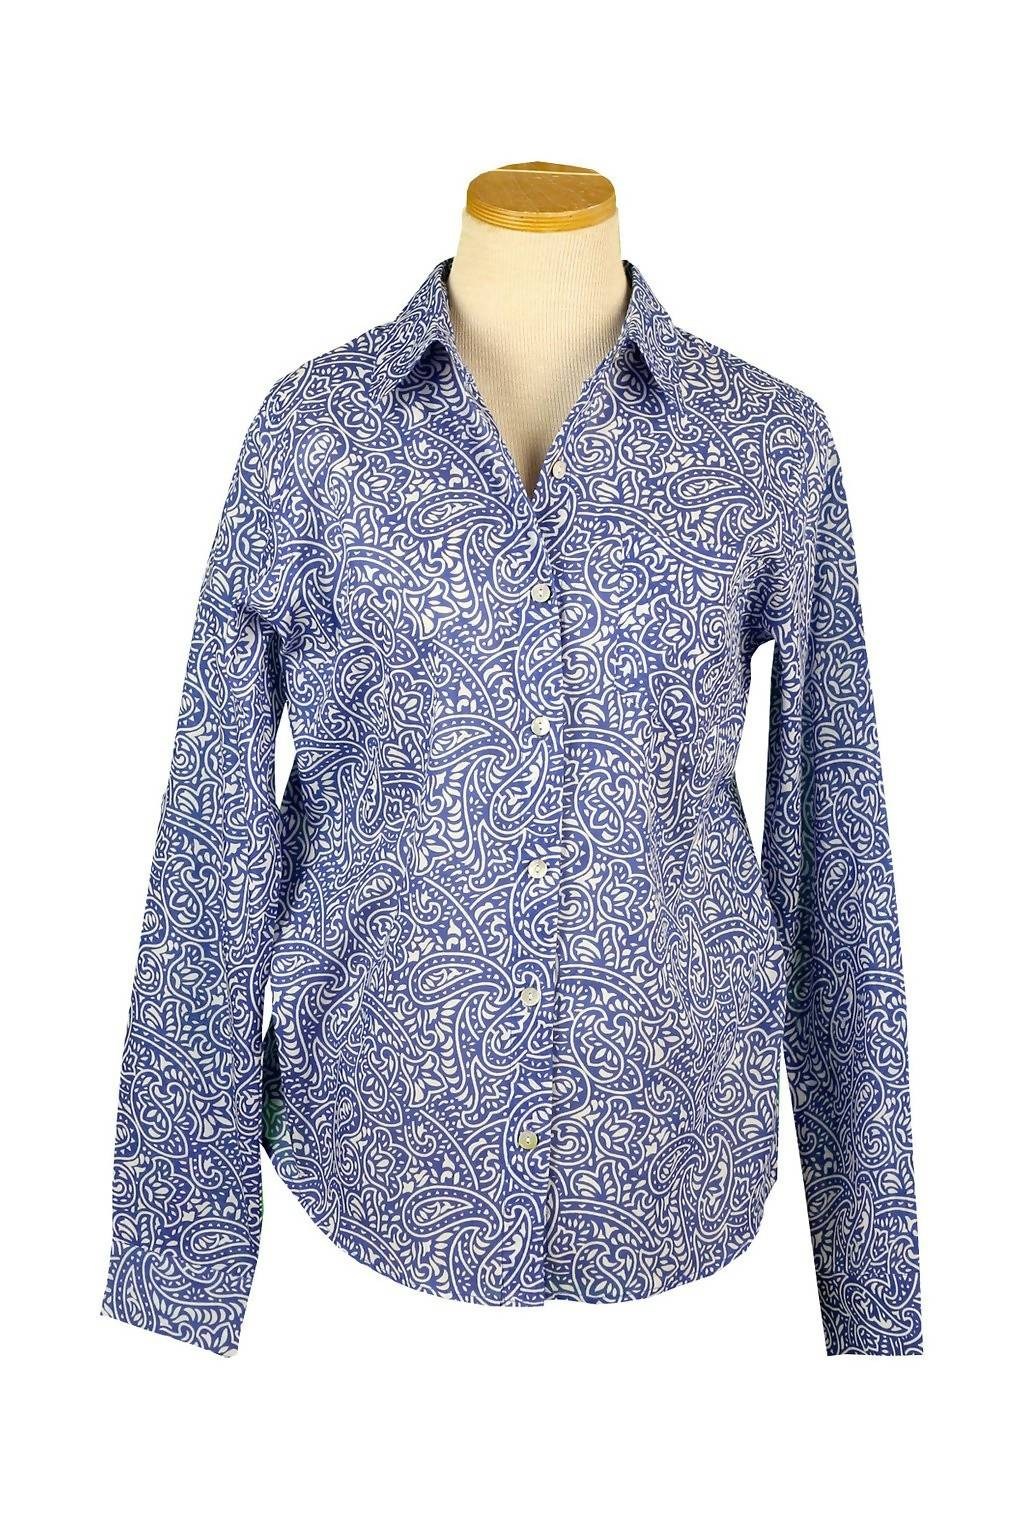 Royal Blue and White Paisley Button Down Shirt